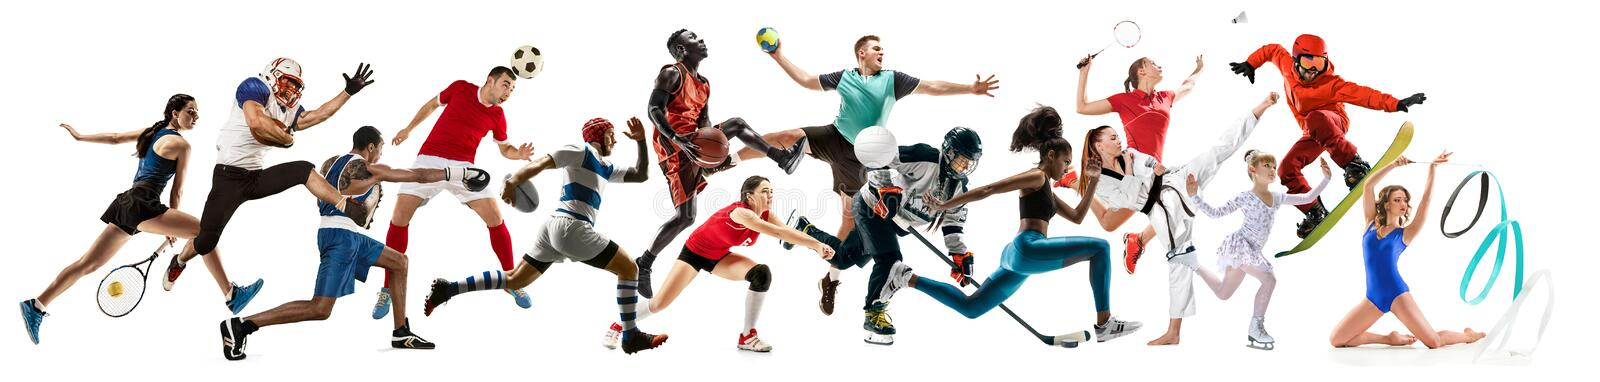 Creative collage of childrens and adults in sport. Creative collage of photos of 15 models running and jumping. Advertising, sport, healthy lifestyle, motion royalty free stock photos